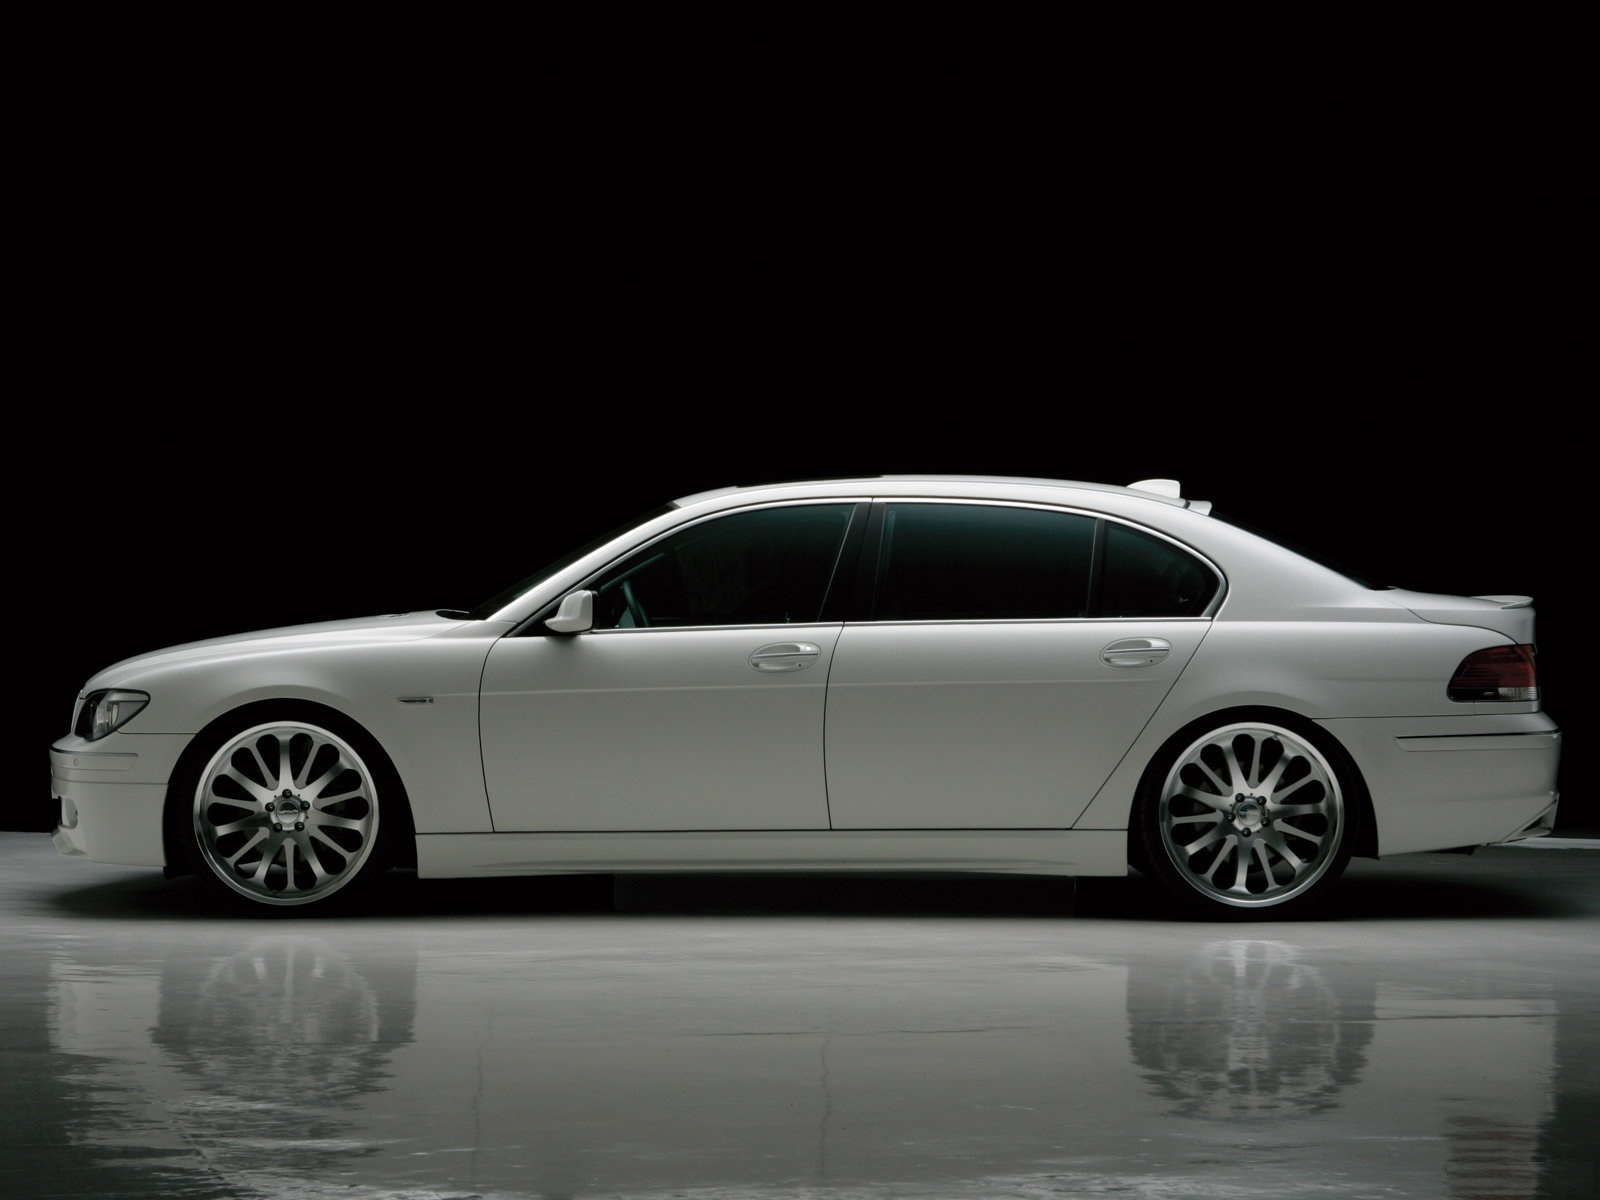 Wallpaper Bmw 7 Series Wallpaper